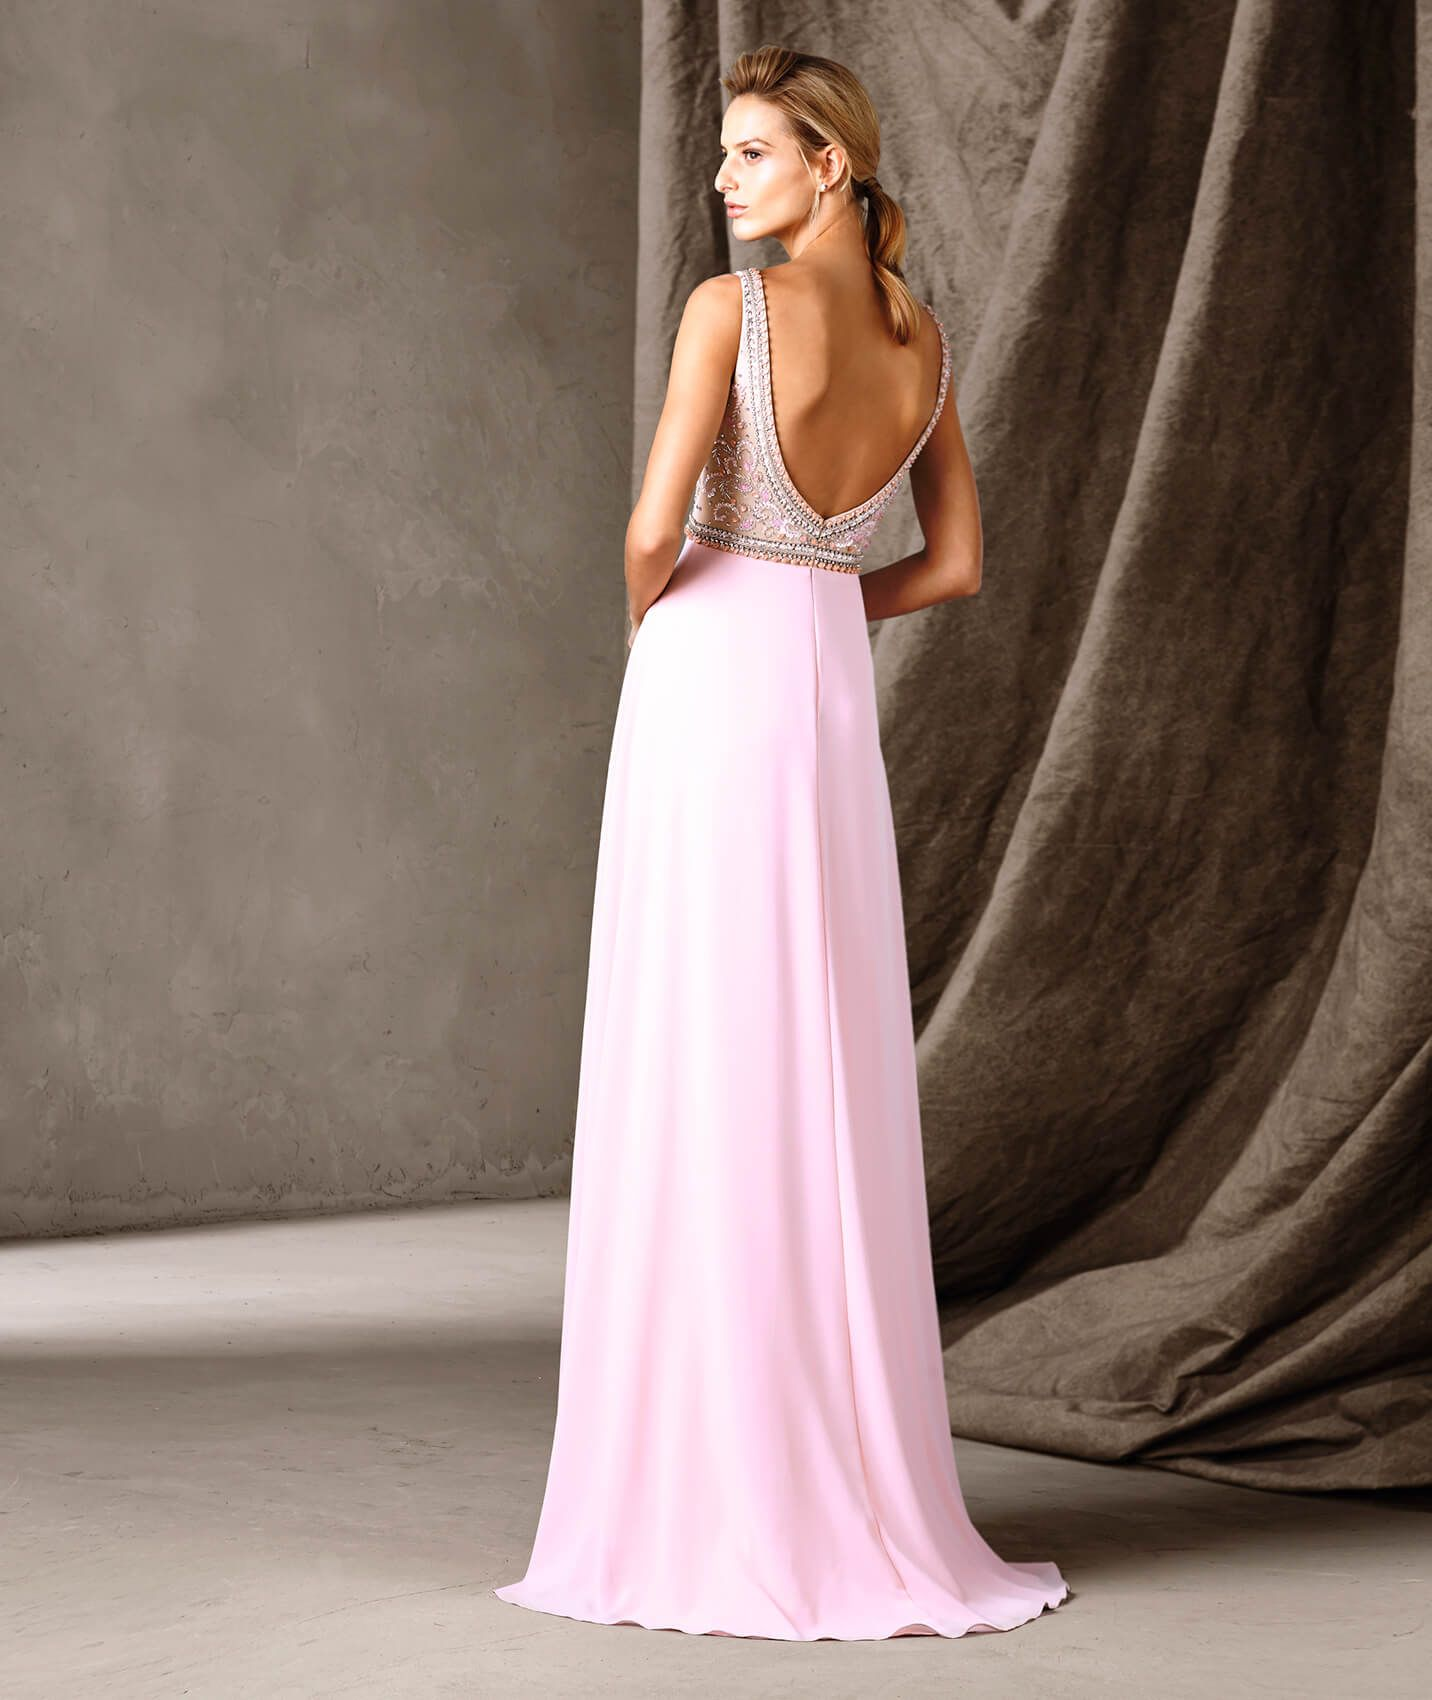 Spectacular long party dress with a full skirt fit for a princess ...